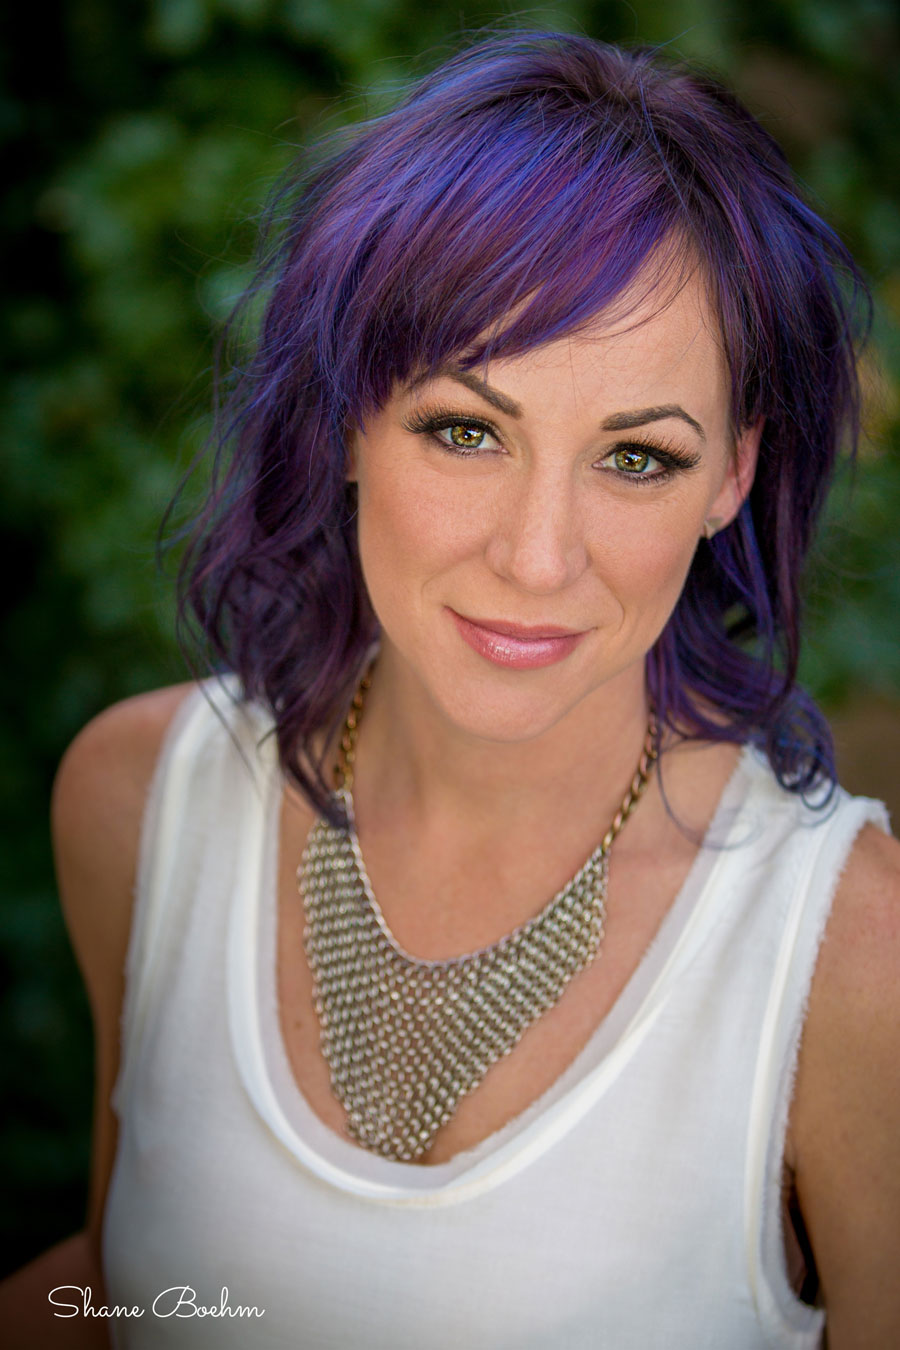 Female with purple hair portrait